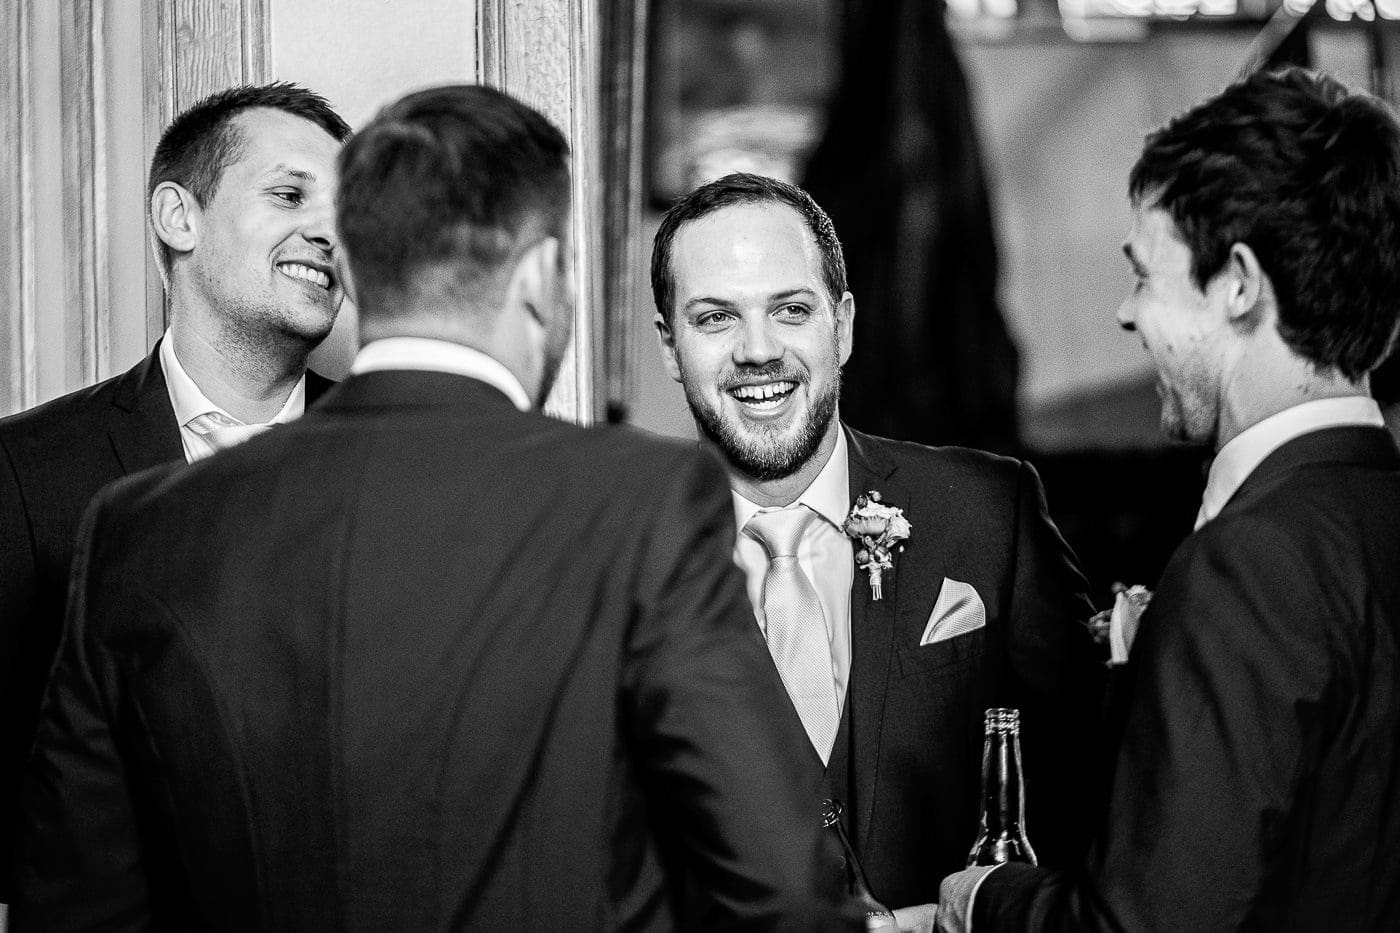 the groom laughing with his groomsmen